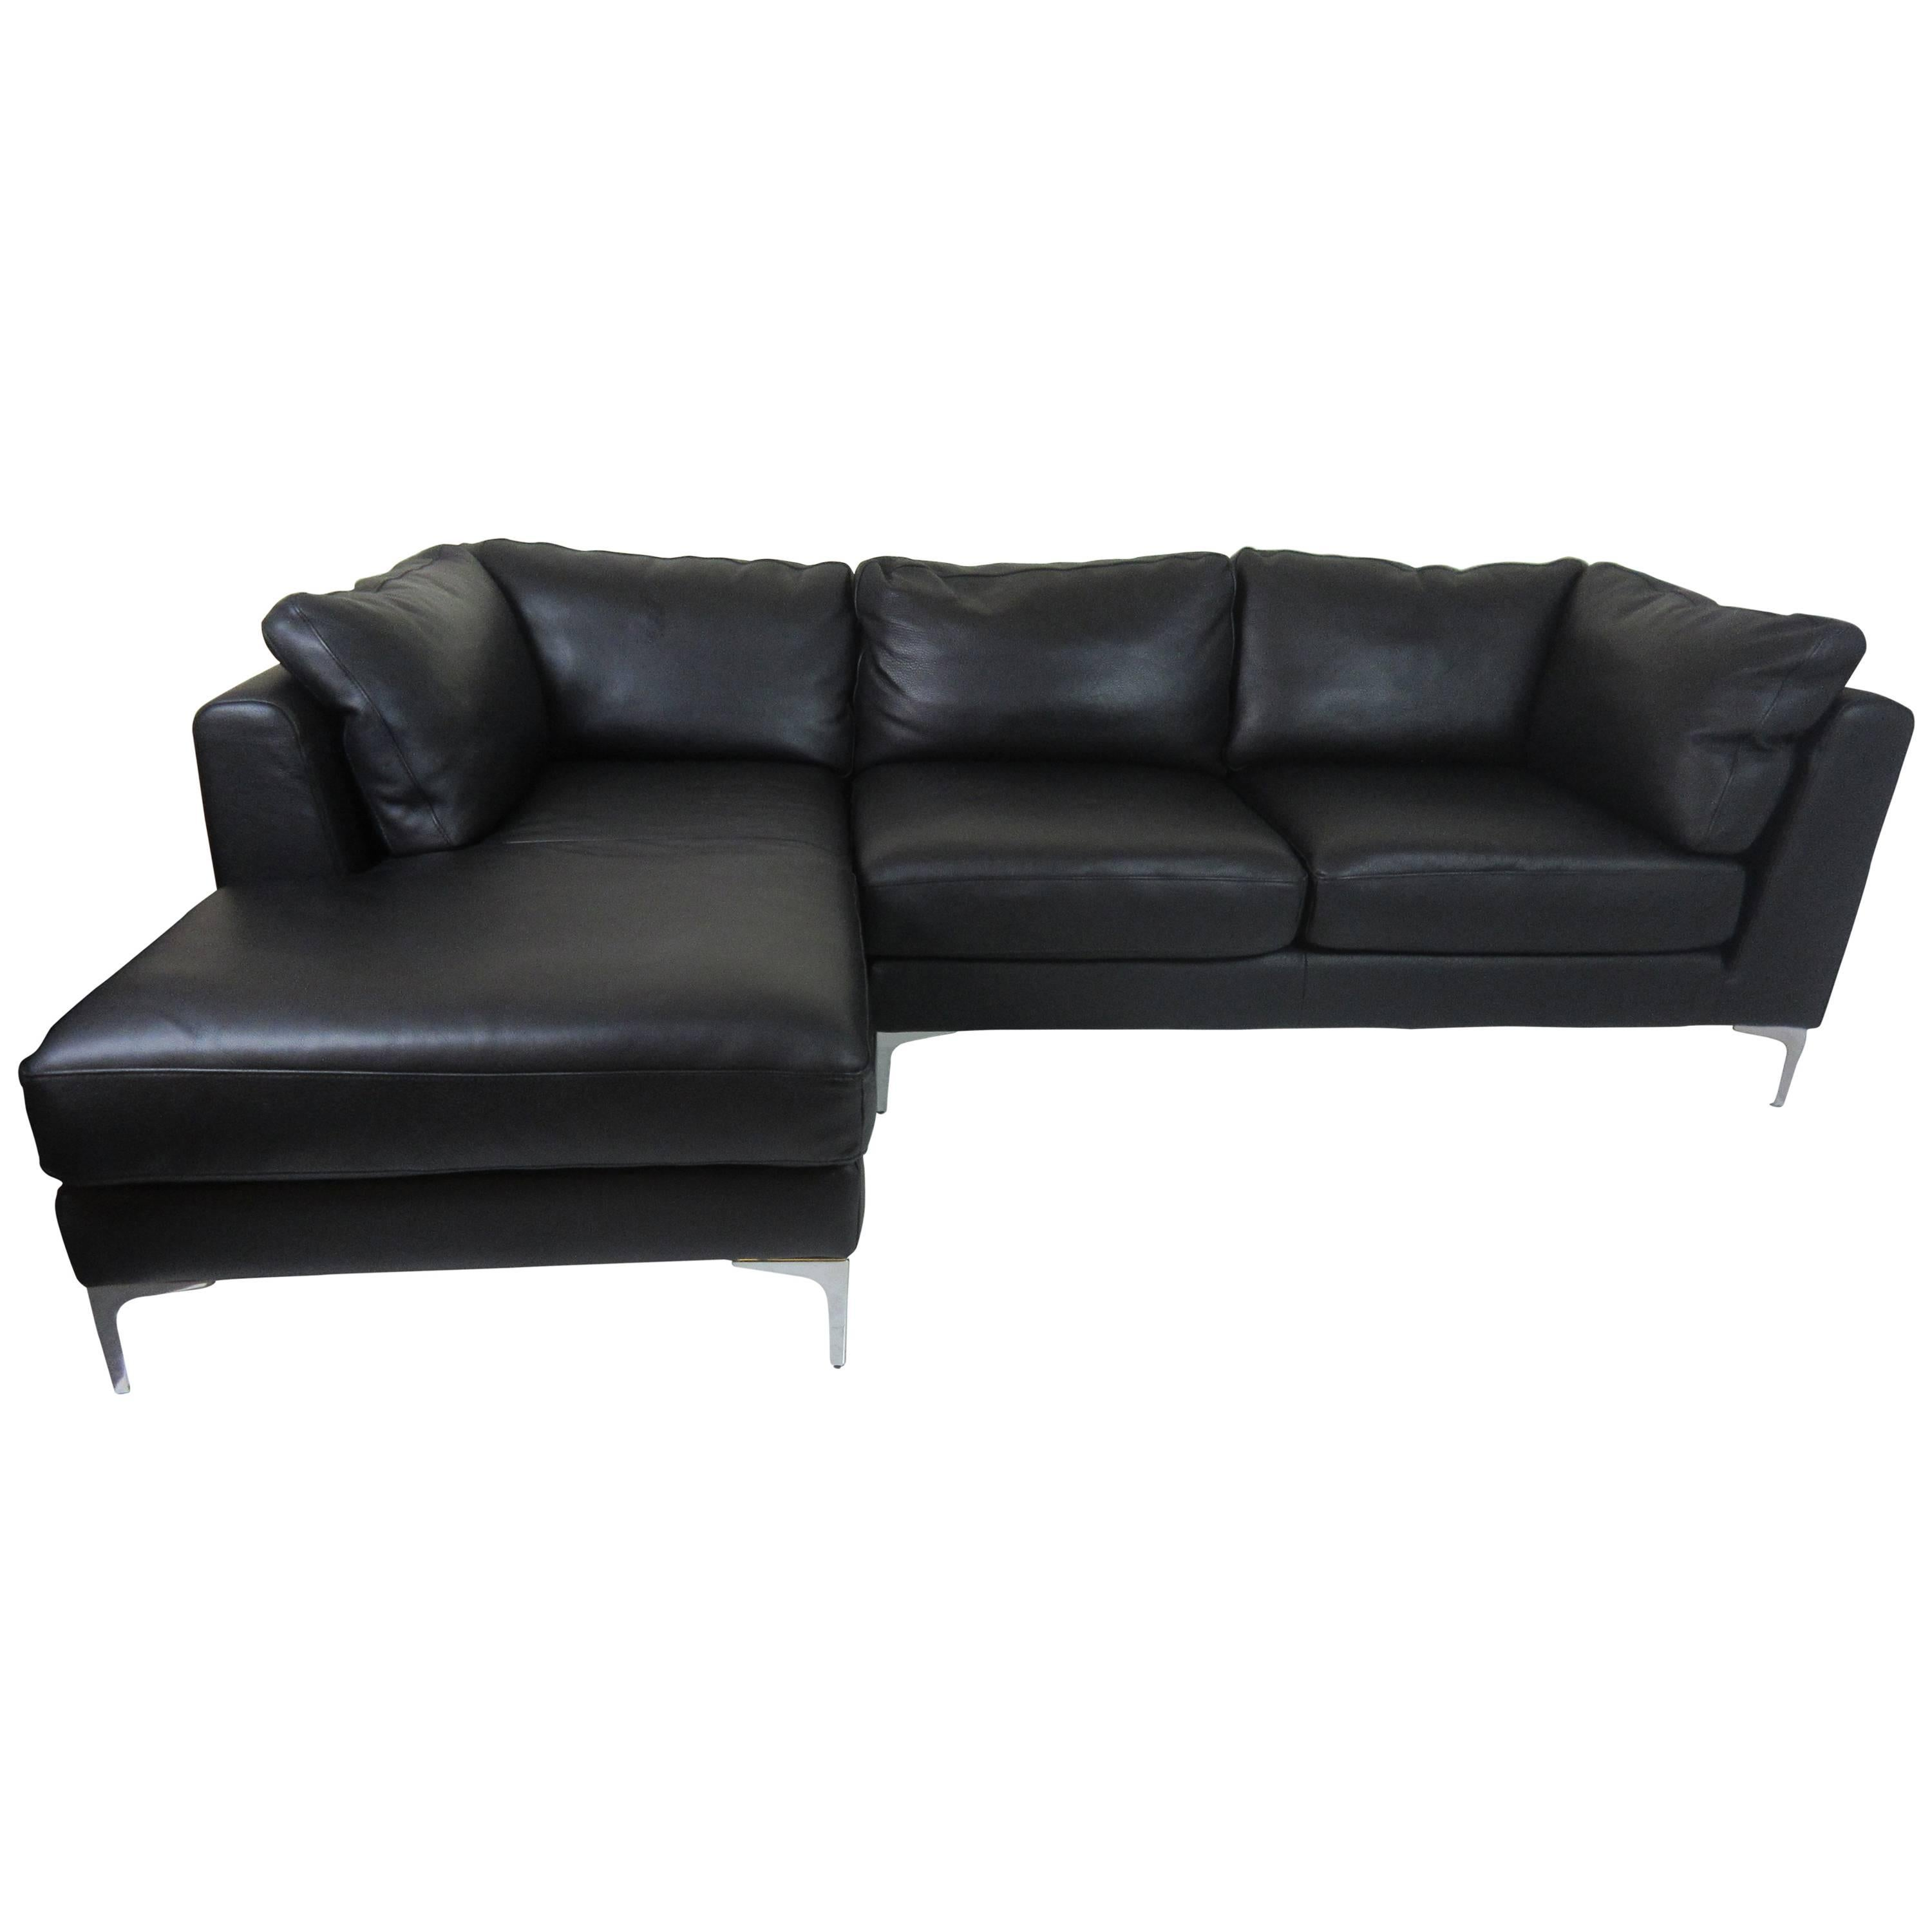 Design Within Reach Nicoletti Sectional Sofa in Black Leather at 1stdibs